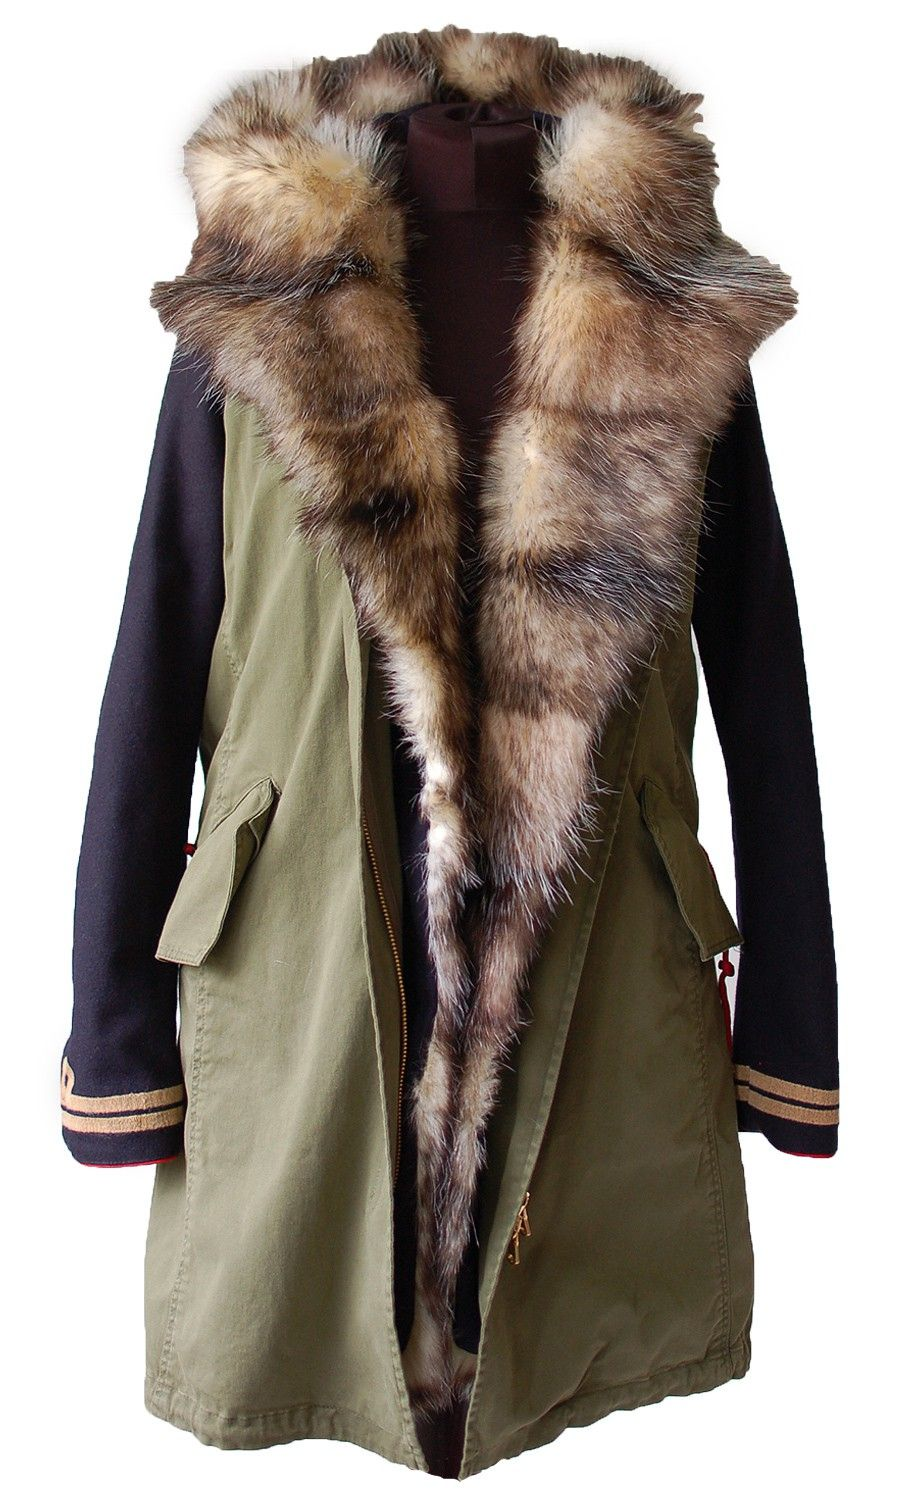 PROJECT FOCE  Irma Military Jacket Amazing new arival @Carrie Mcknelly Mcknelly Mcknelly Market